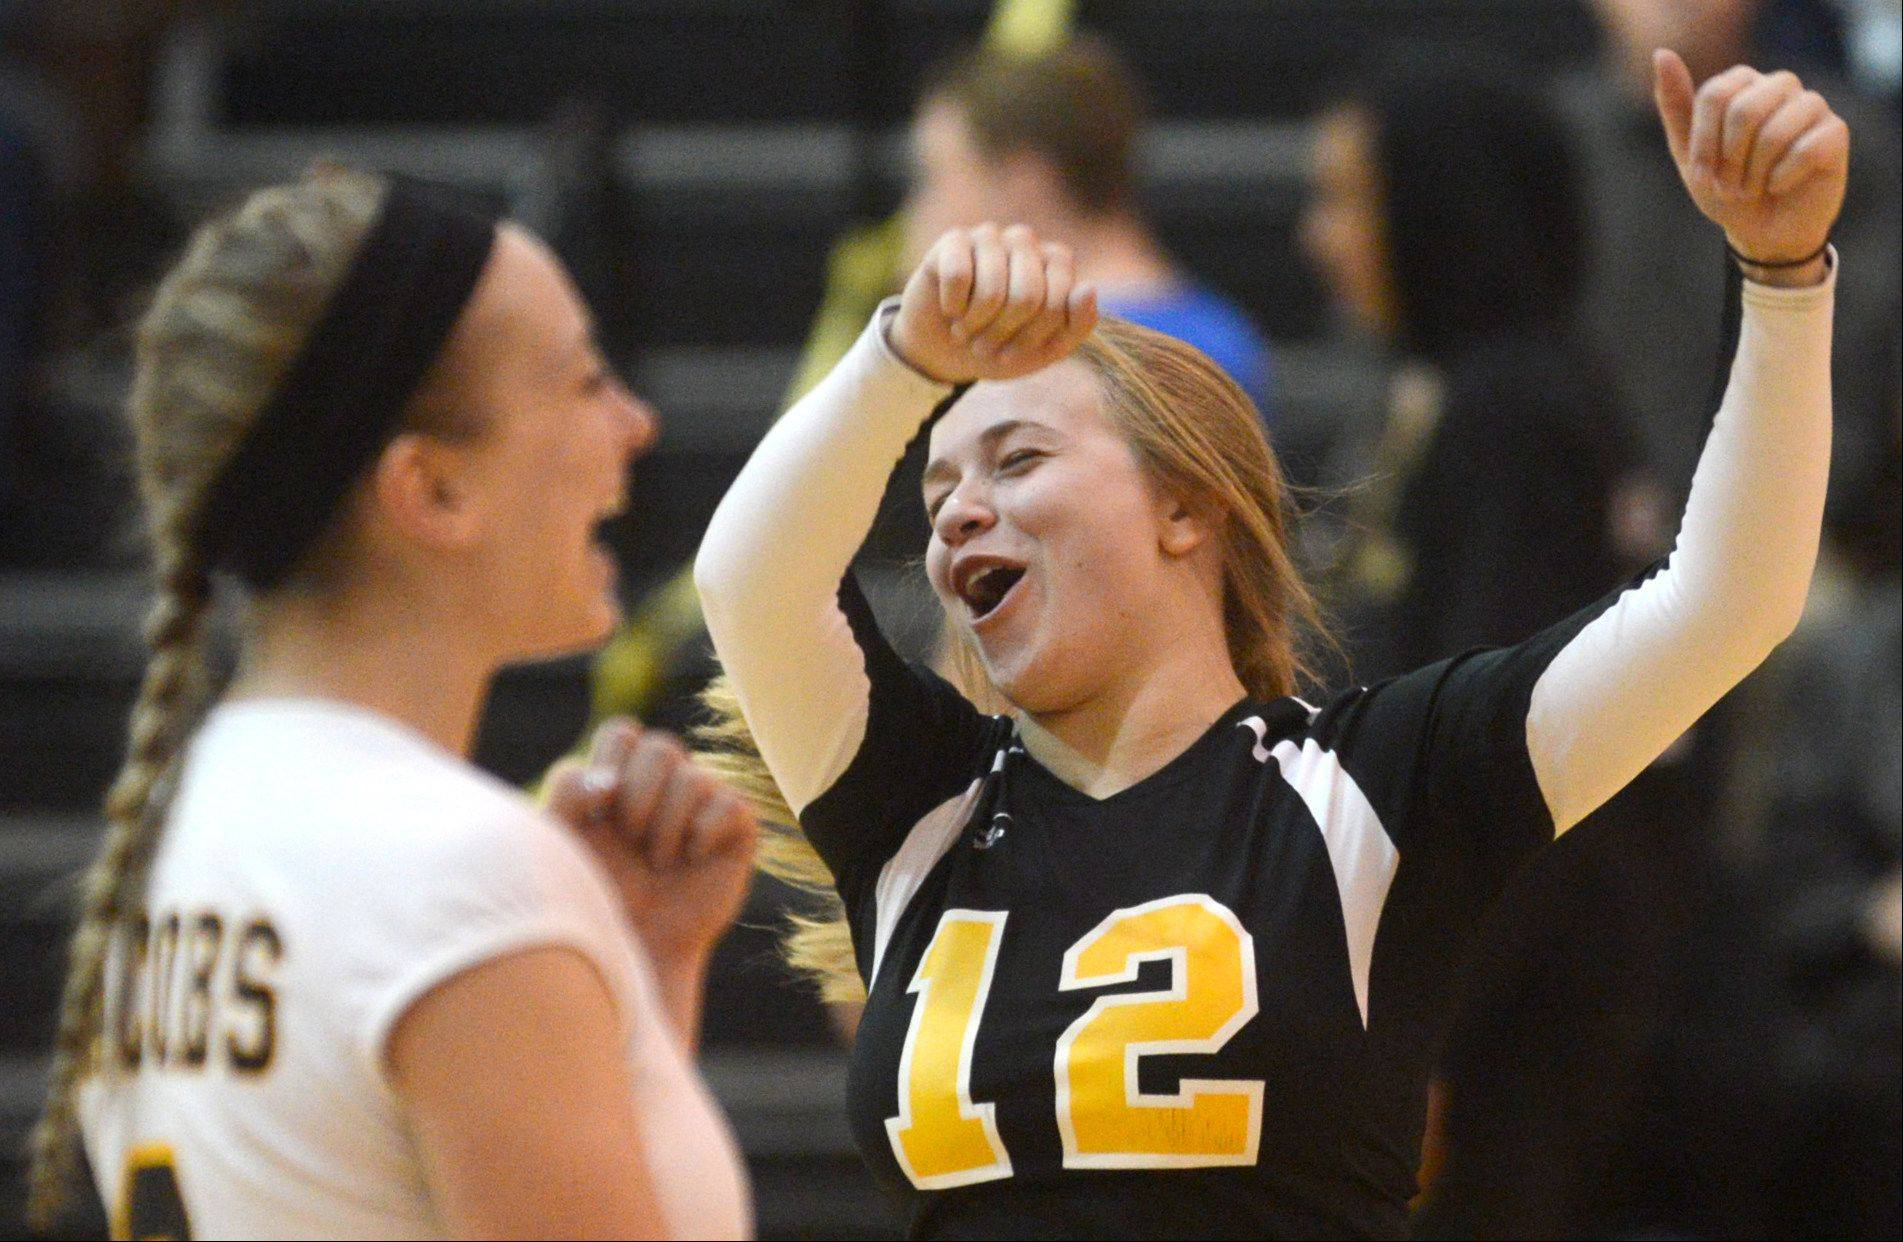 Jacobs' Mackie Traub, right, celebrates with teammate Kassie Kasper Tuesday night at Jacobs. Traub was celebrated as the lone senior team member on senior night for the Golden Eagles, who swept the Chargers in two sets.